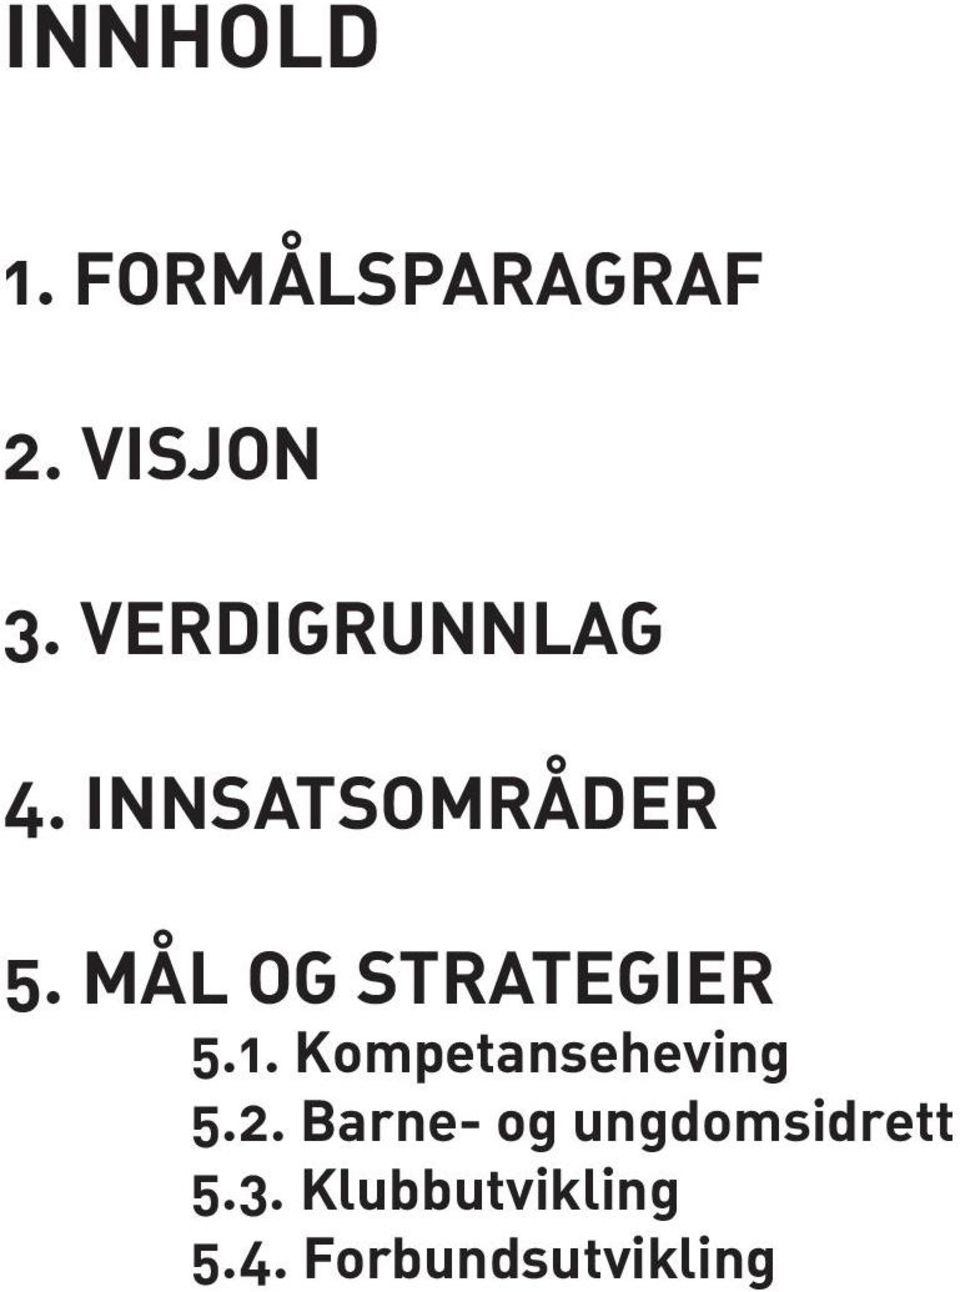 MÅL OG STRATEGIER 5.1. Kompetanseheving 5.2.